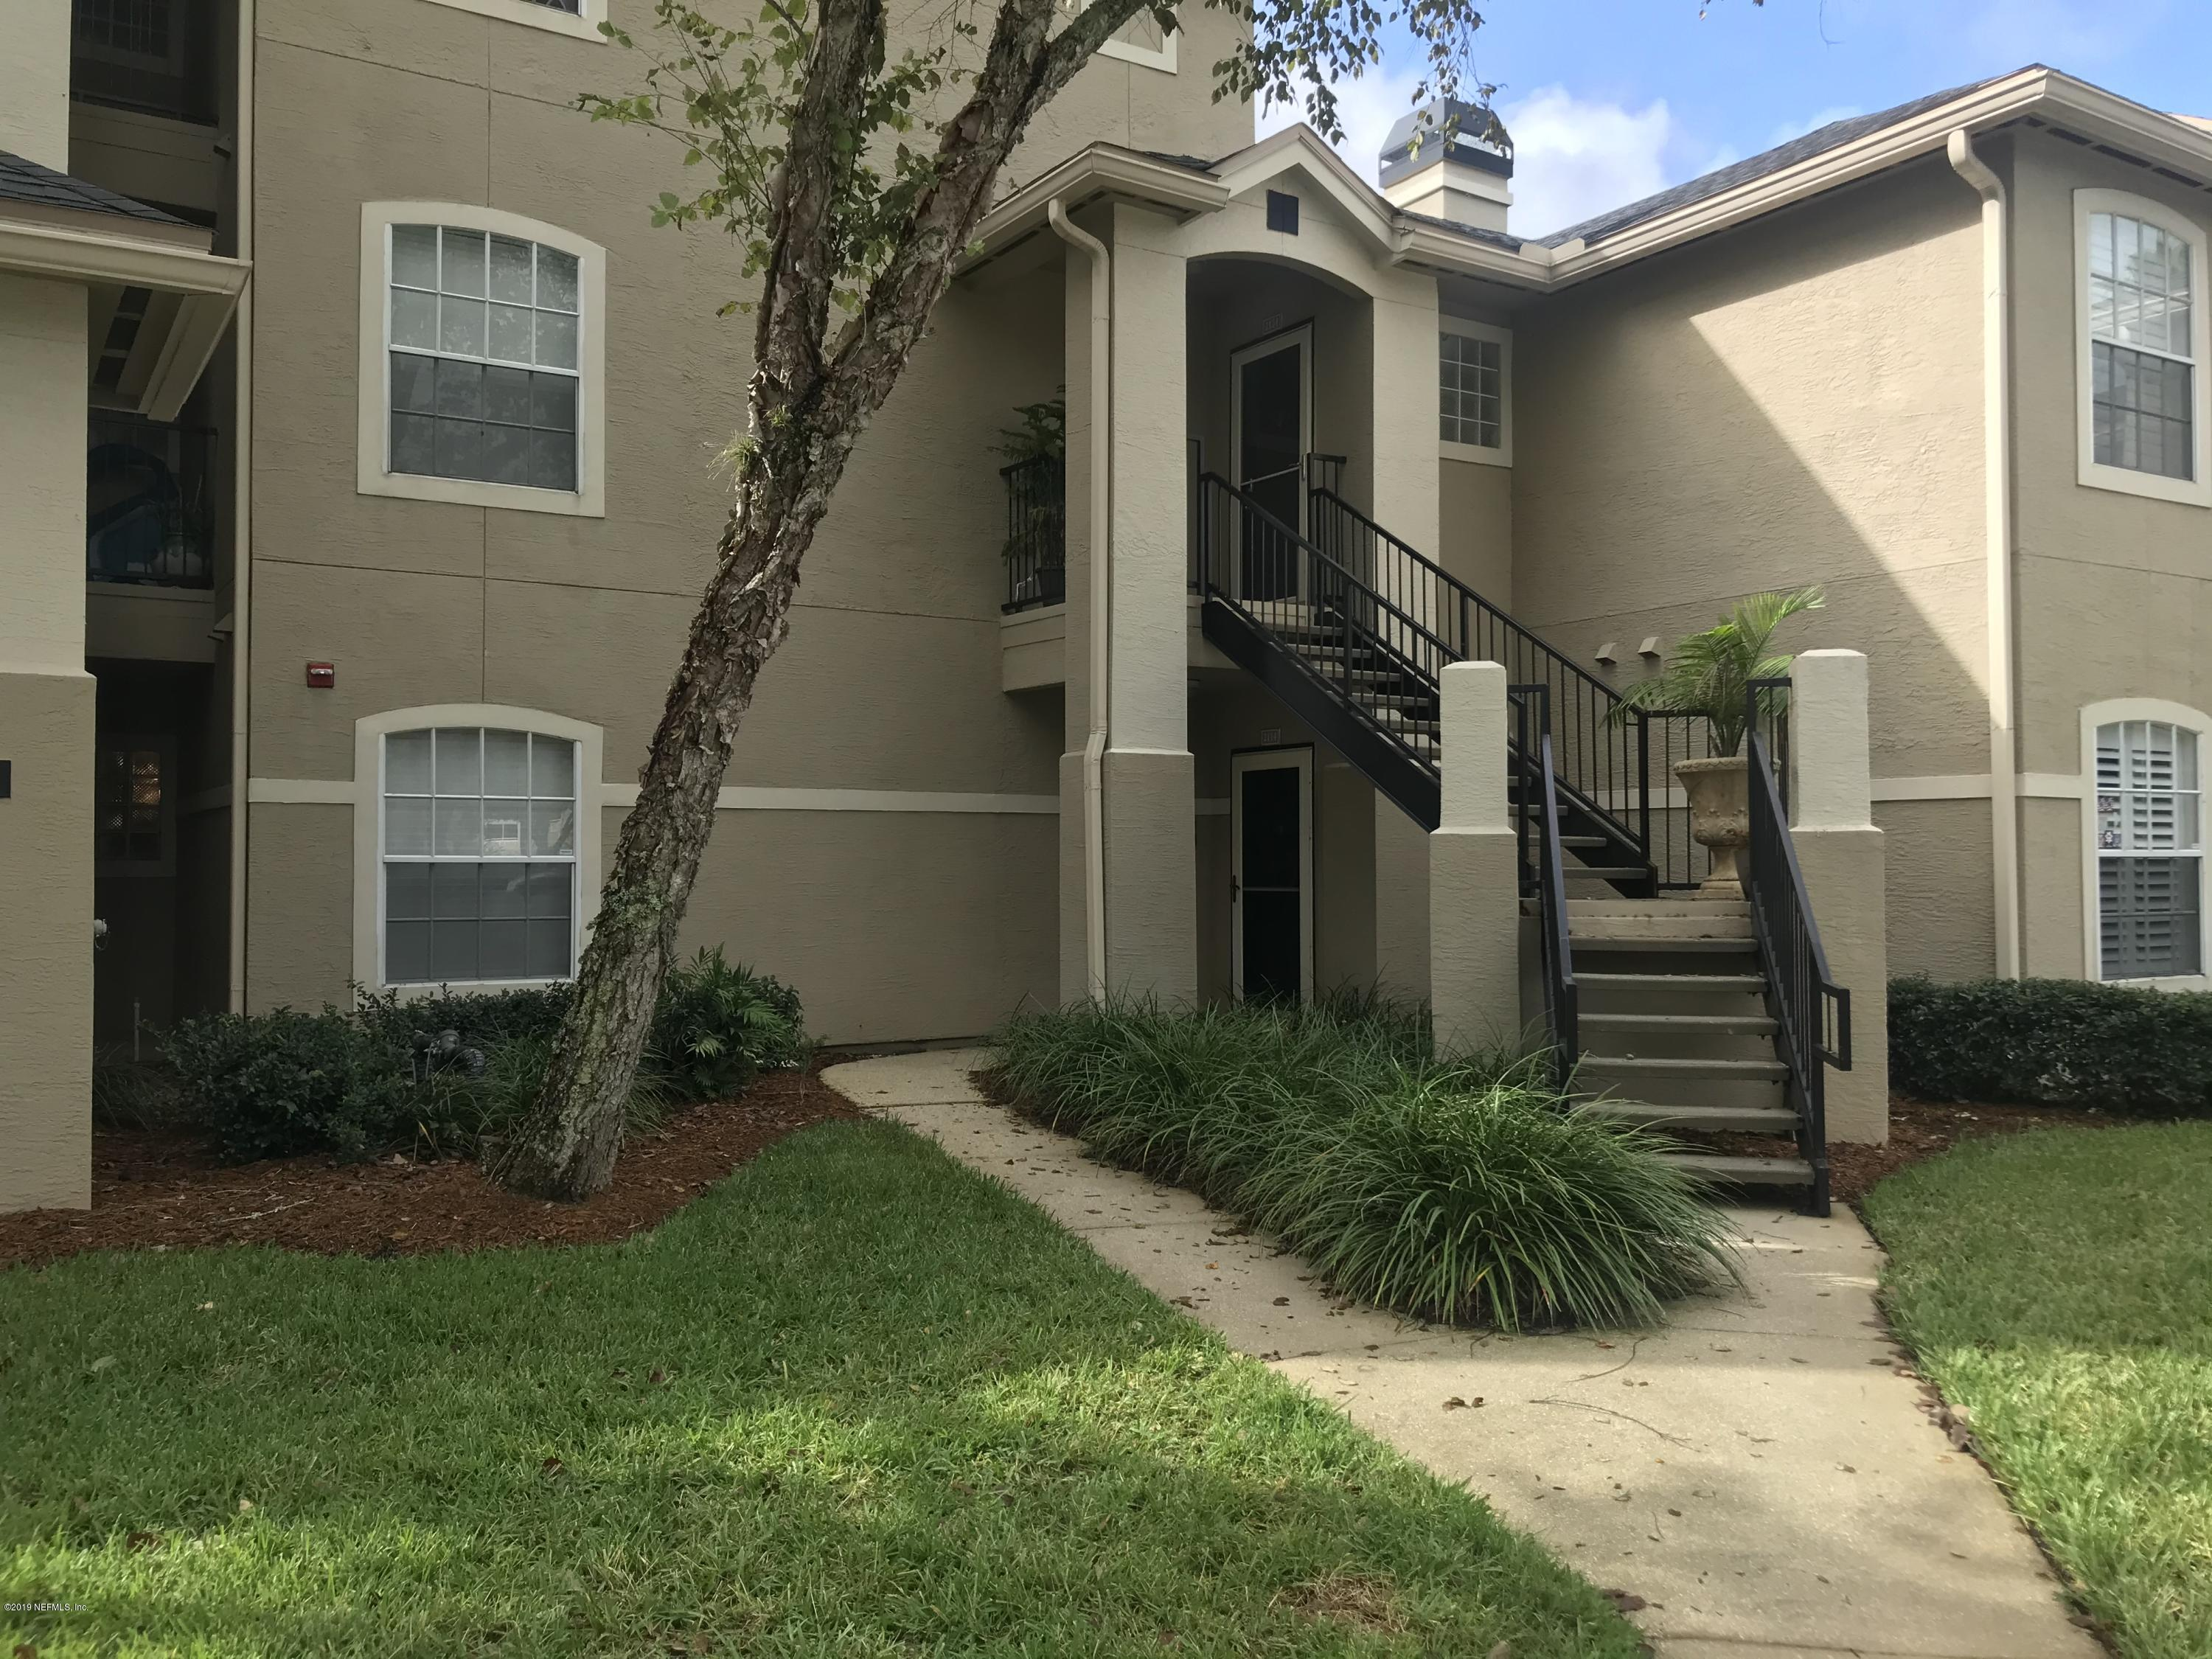 1655 THE GREENS- JACKSONVILLE BEACH- FLORIDA 32250, 2 Bedrooms Bedrooms, ,2 BathroomsBathrooms,Condo,For sale,THE GREENS,1019597